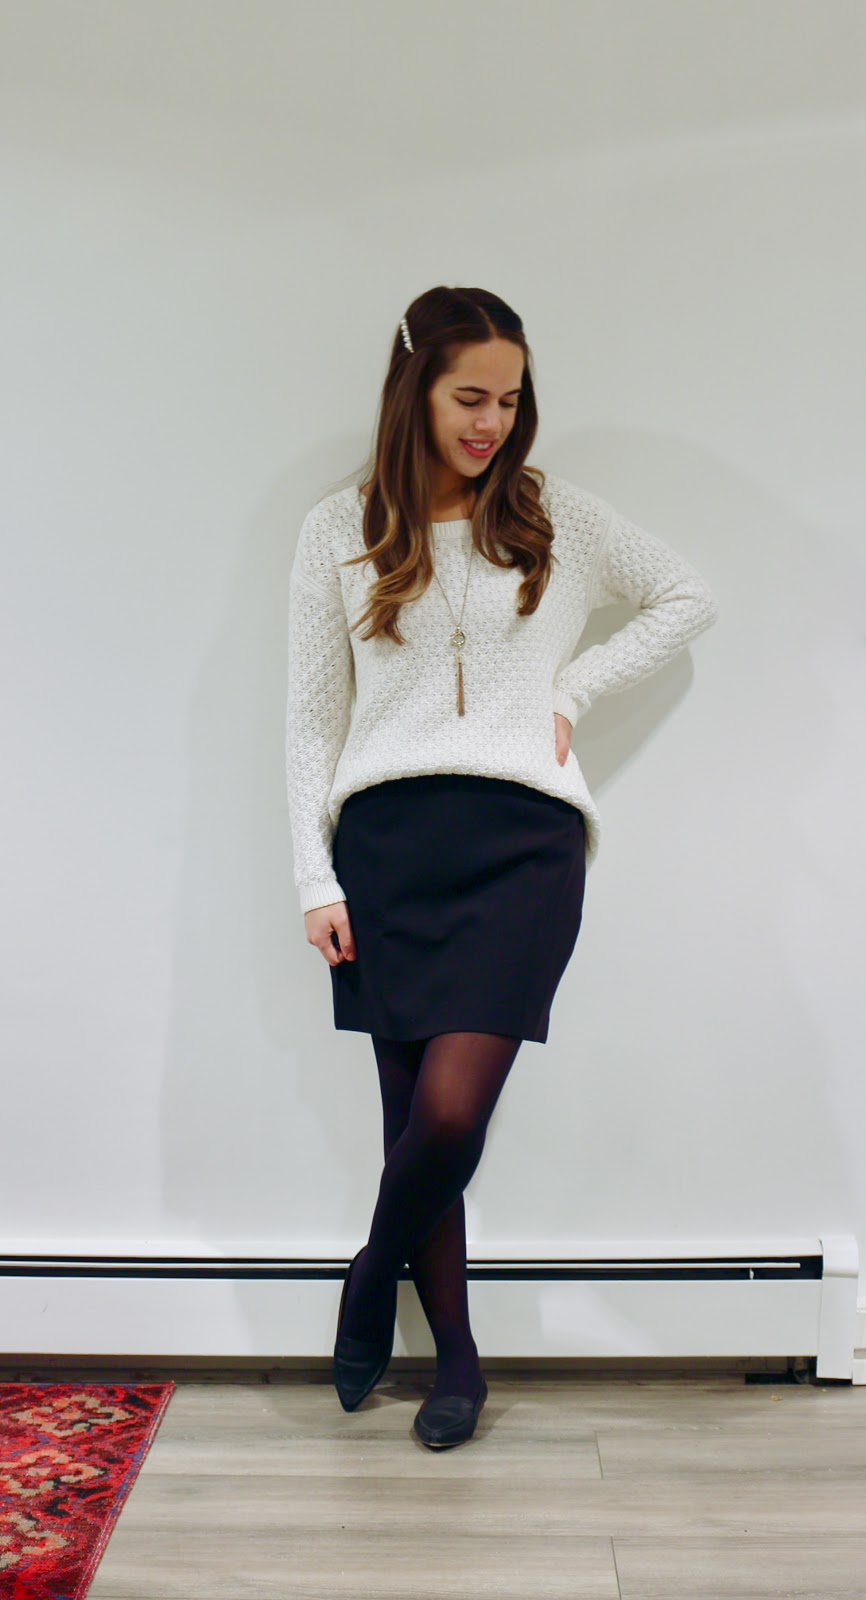 Jules in Flats - Oversize Knit Sweater with Mini Skirt (Business Casual Fall Workwear on a Budget)